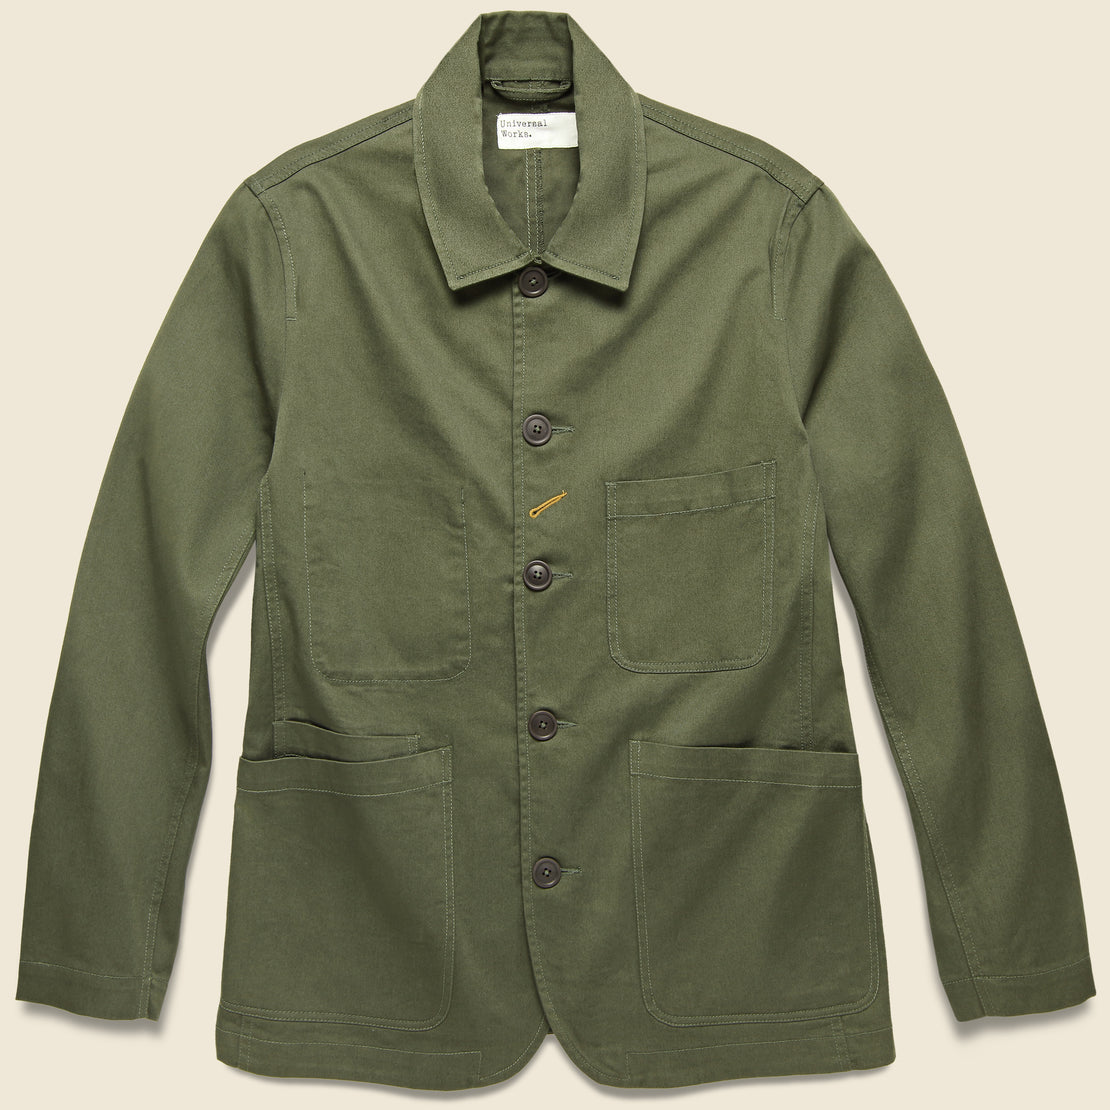 Universal Works Twill Bakers Jacket - Olive